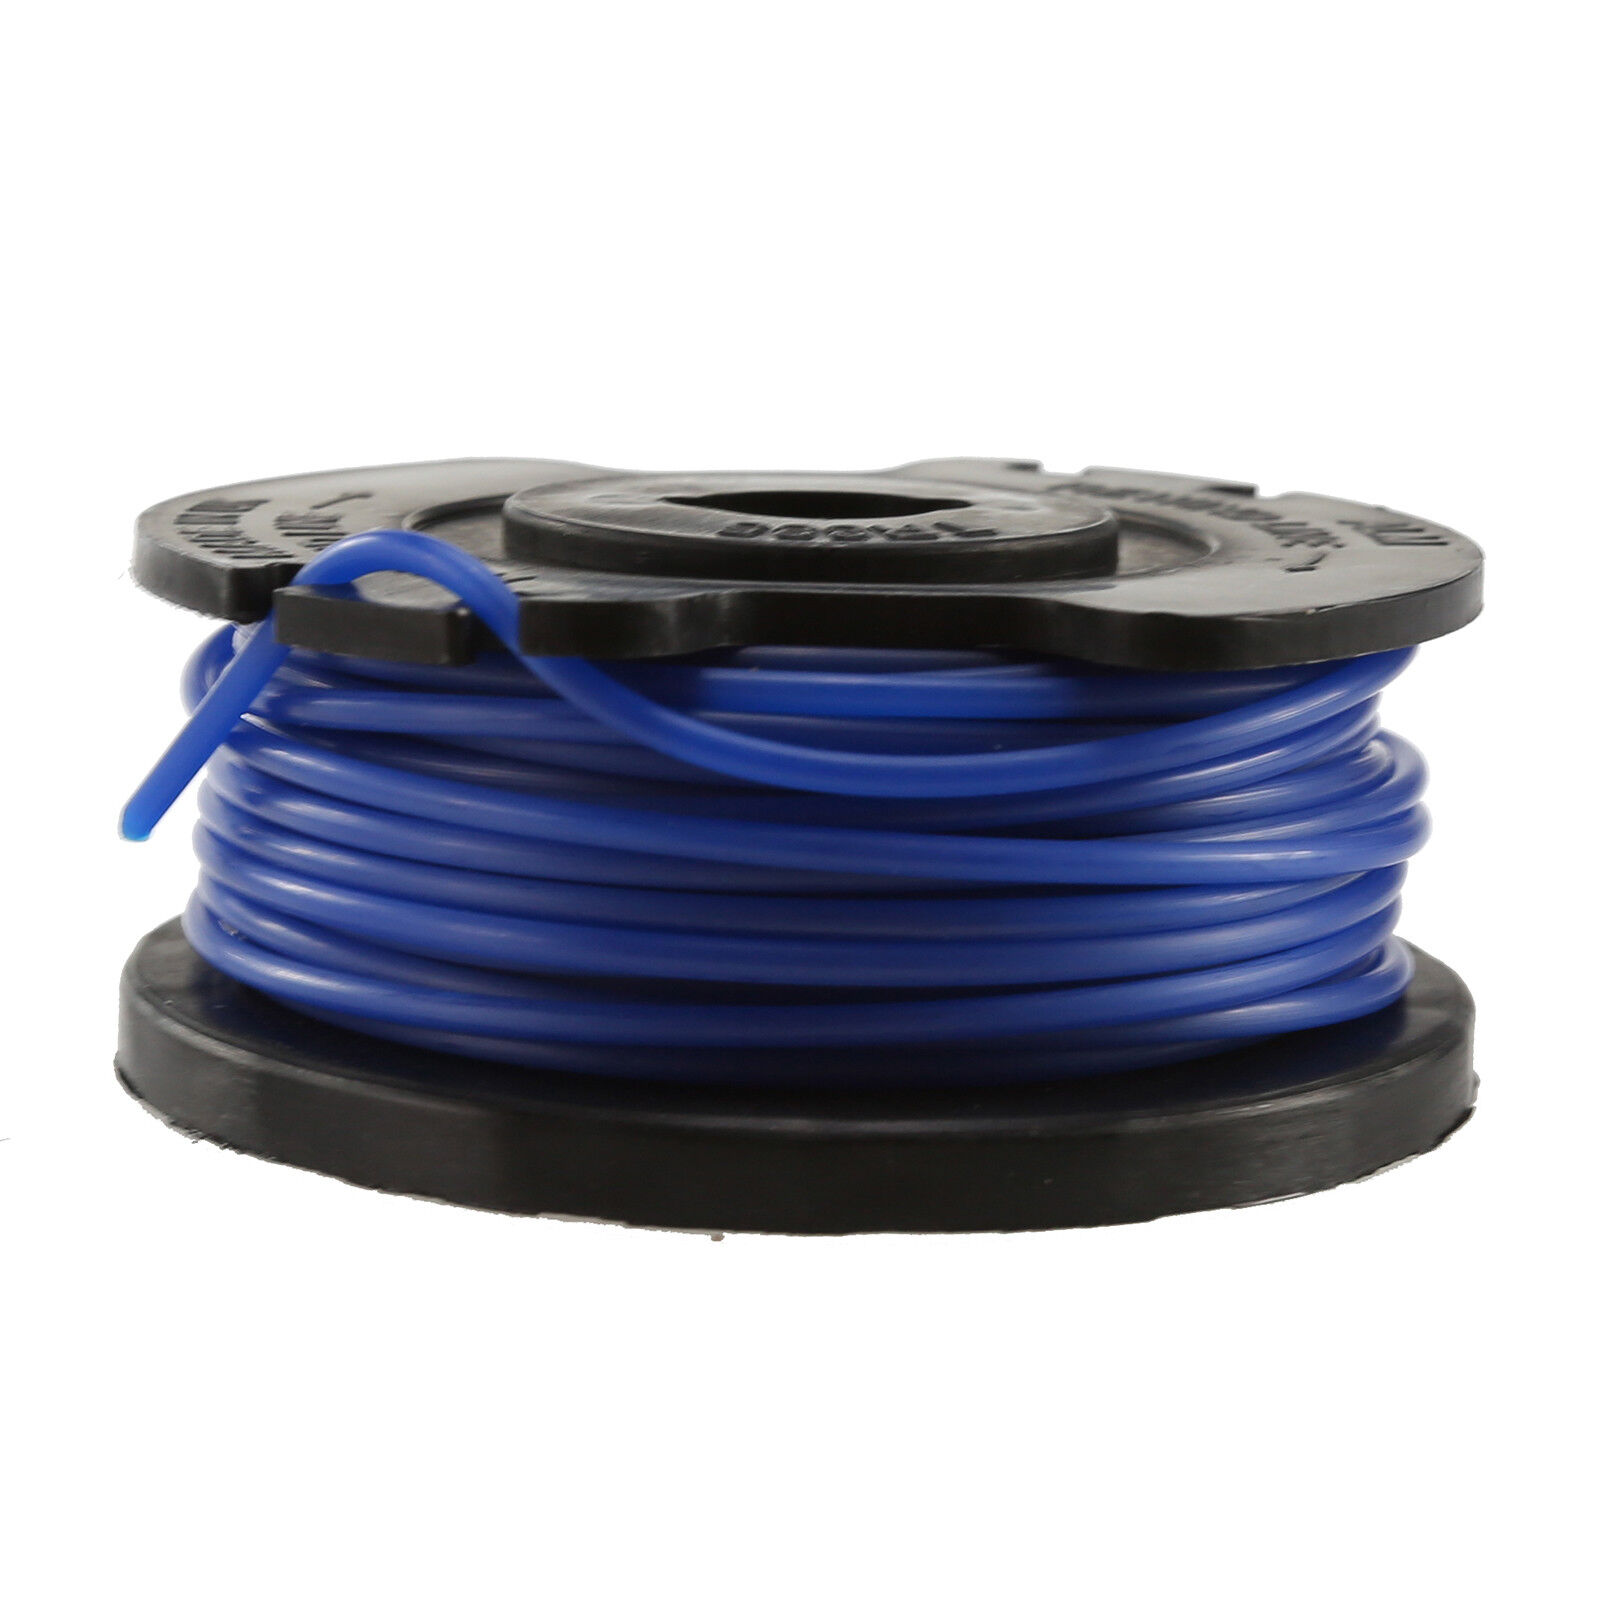 Details about ALM Trimmer Spool & Line 1 5mm x 6m For Bosch ART23SL ART26SL  Strimmers